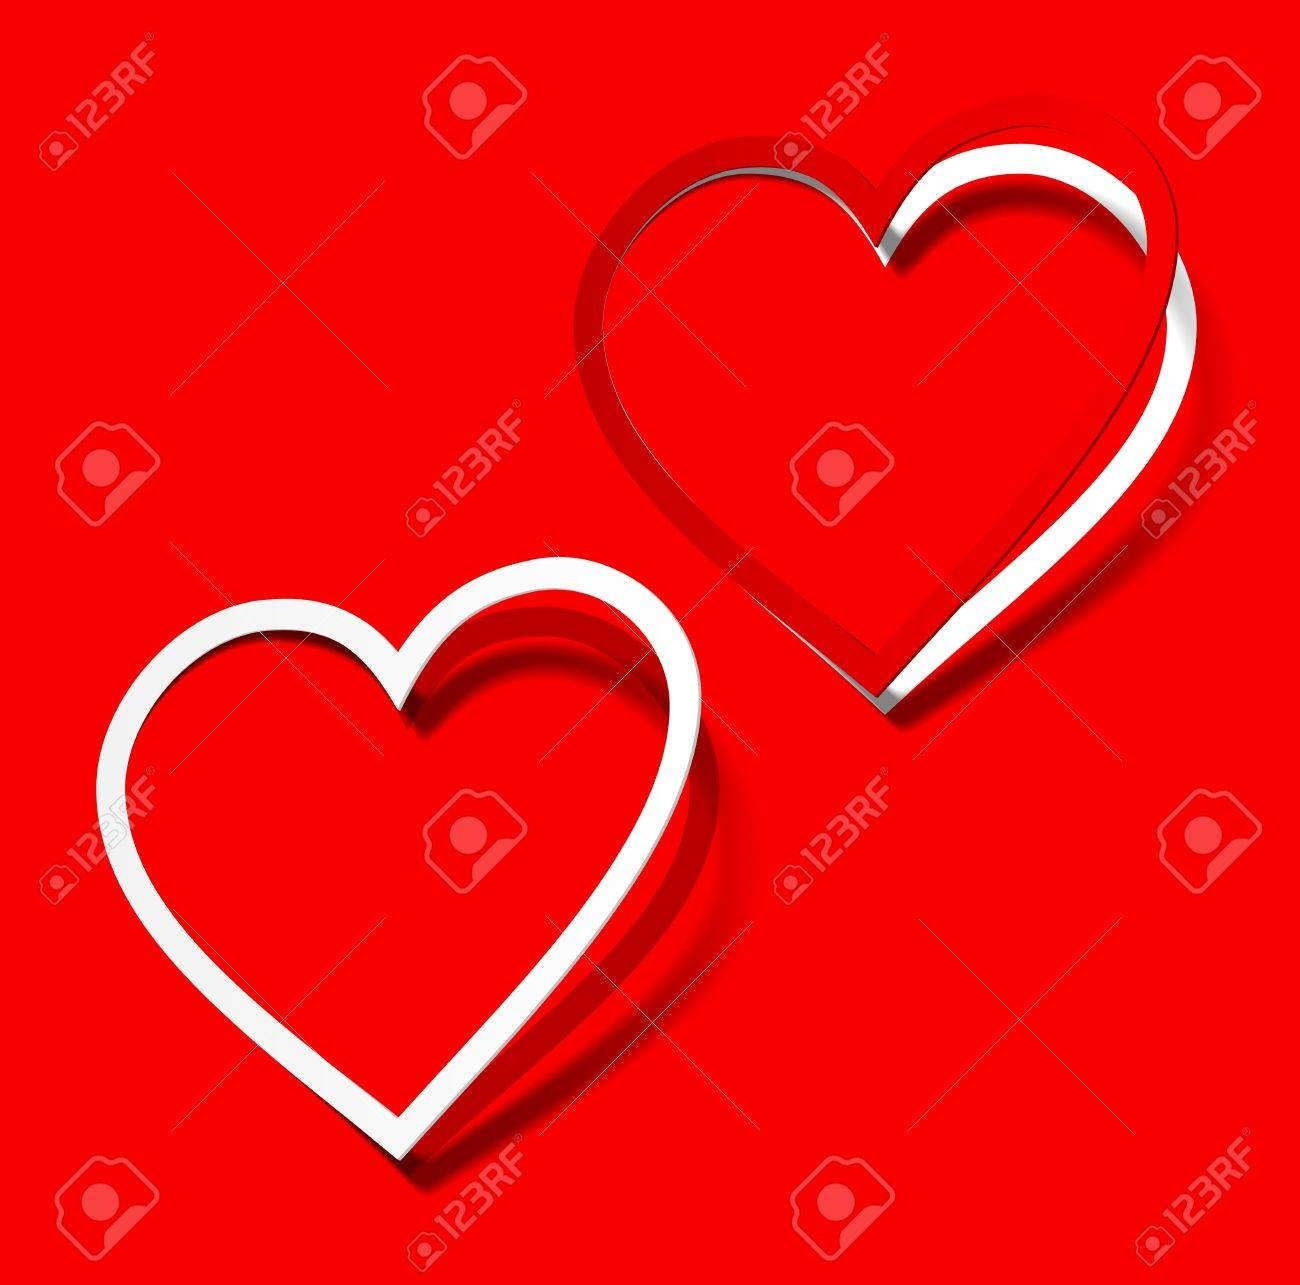 I love you heart sticker red scarlet realistic shadow symbol sign object paper emotion Stock Vector - 11175109